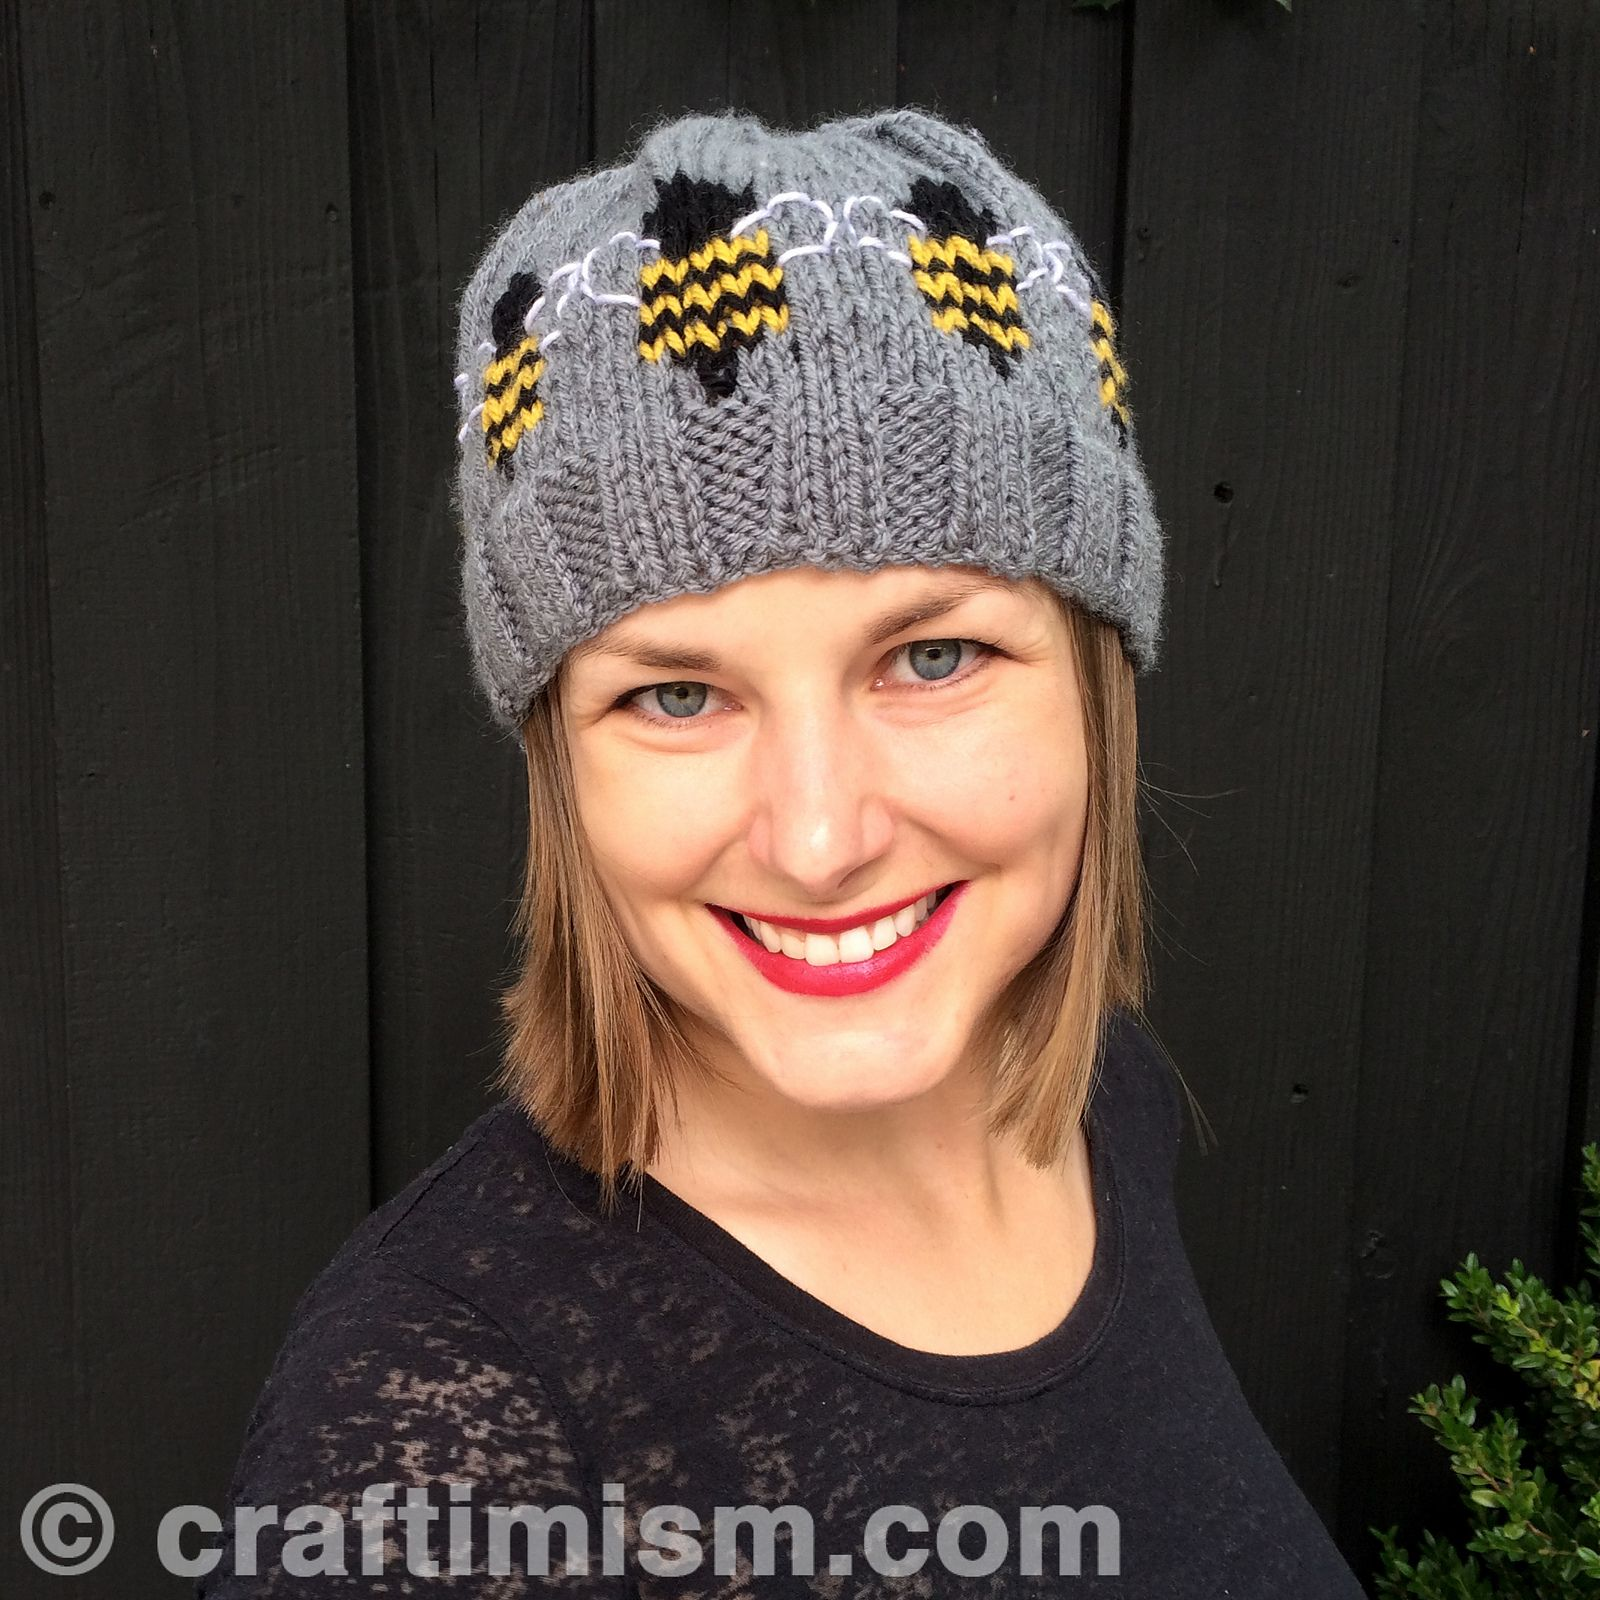 Bee Patterned Knit Hat pattern by Heidi Arjes | Ravelry, Bees and Lions